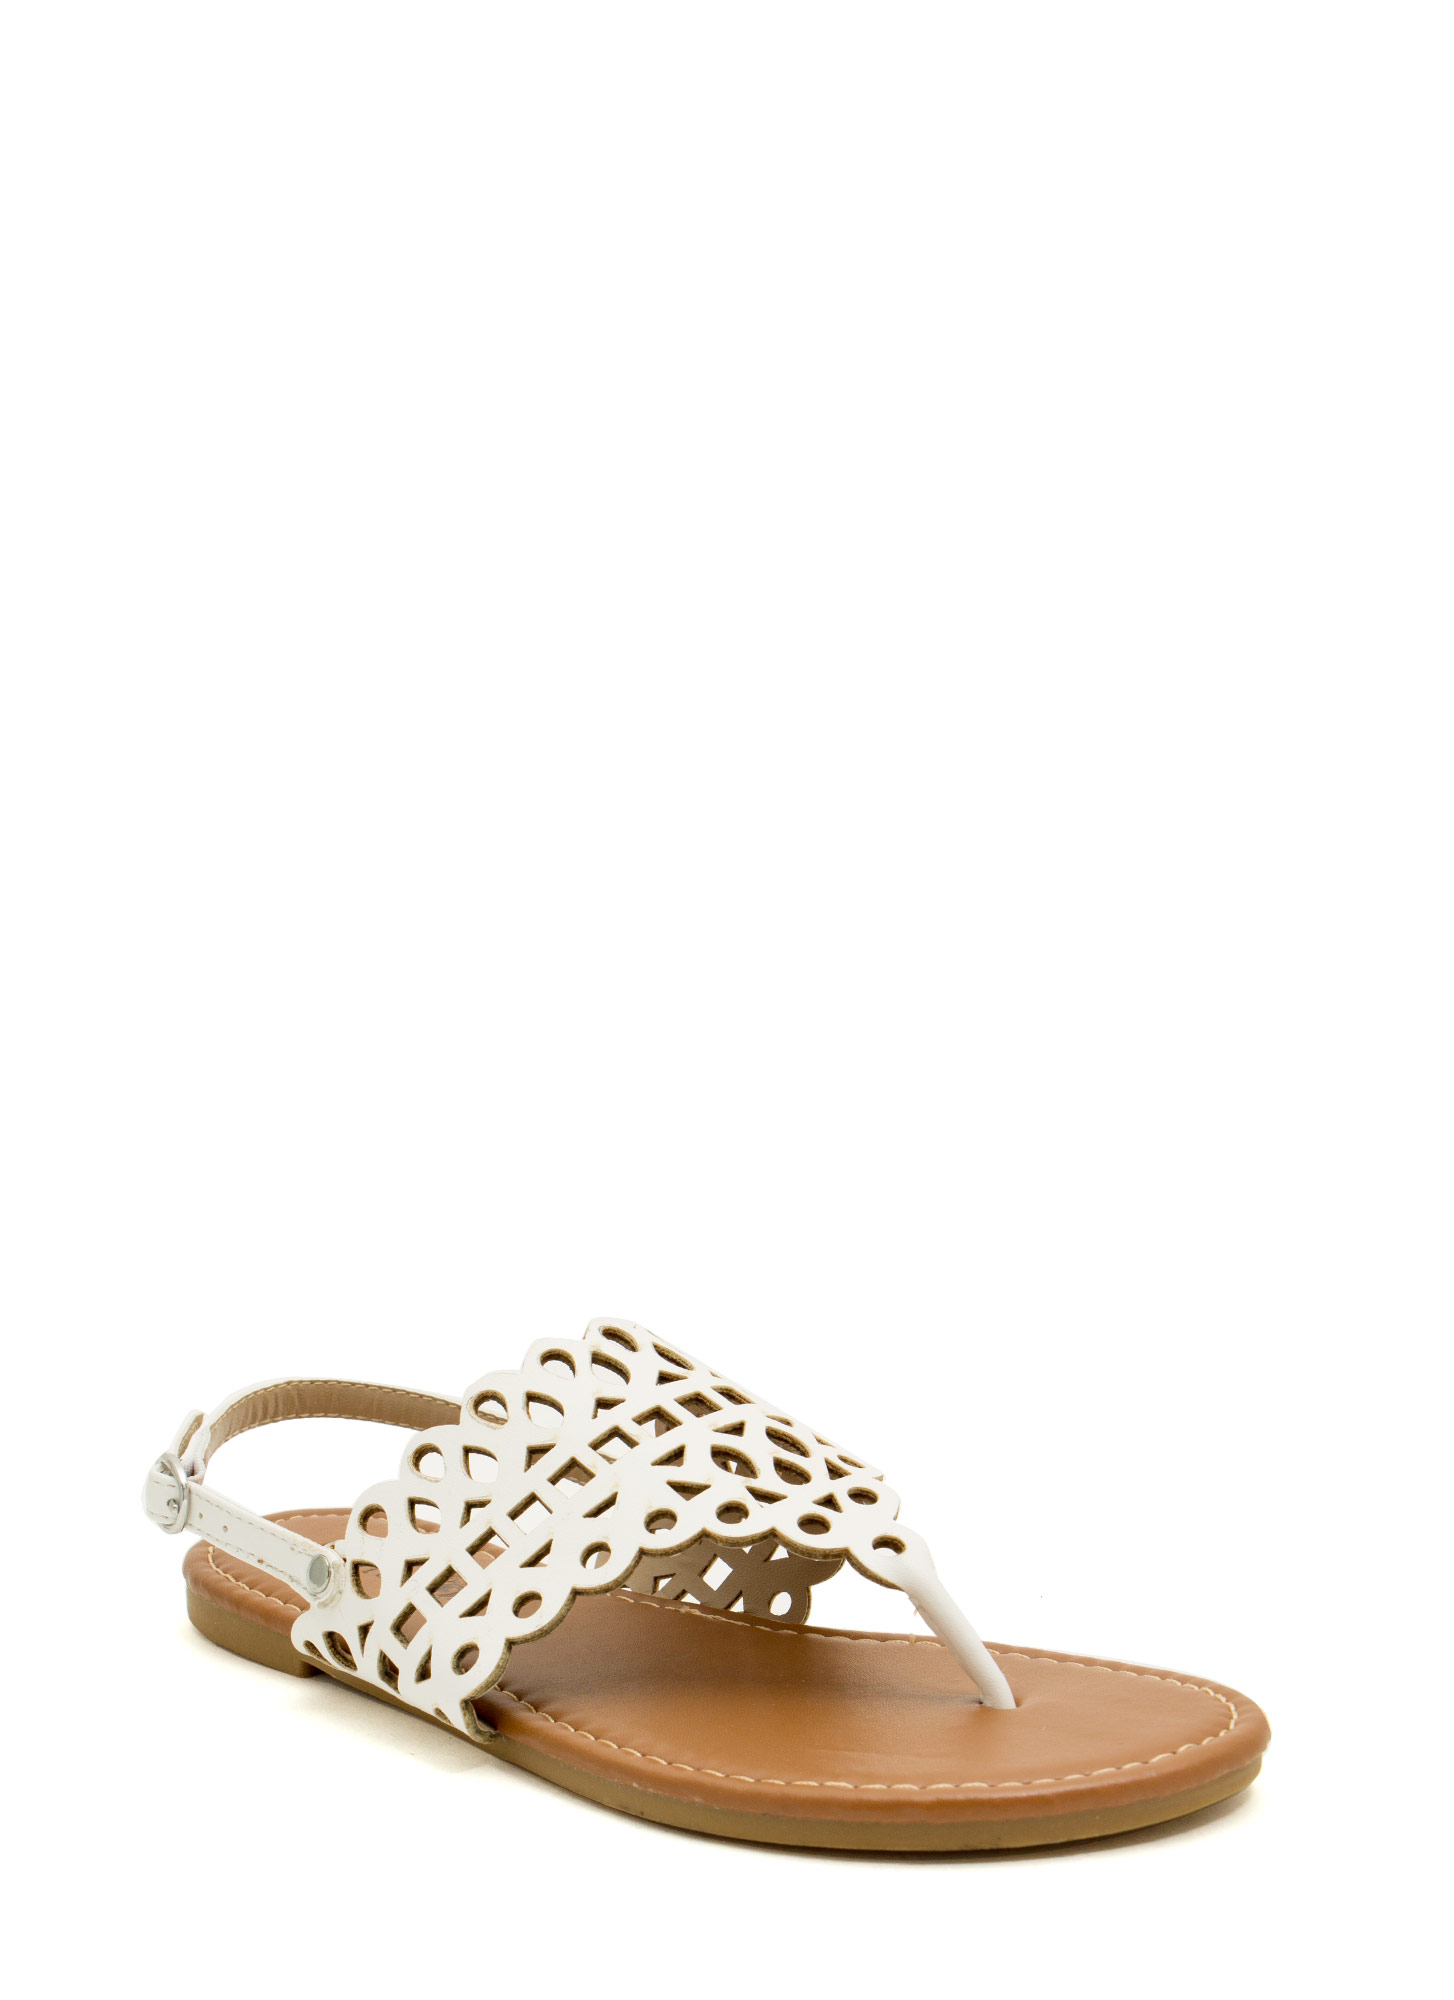 Made The Cut-Out Thong Sandals WHITE